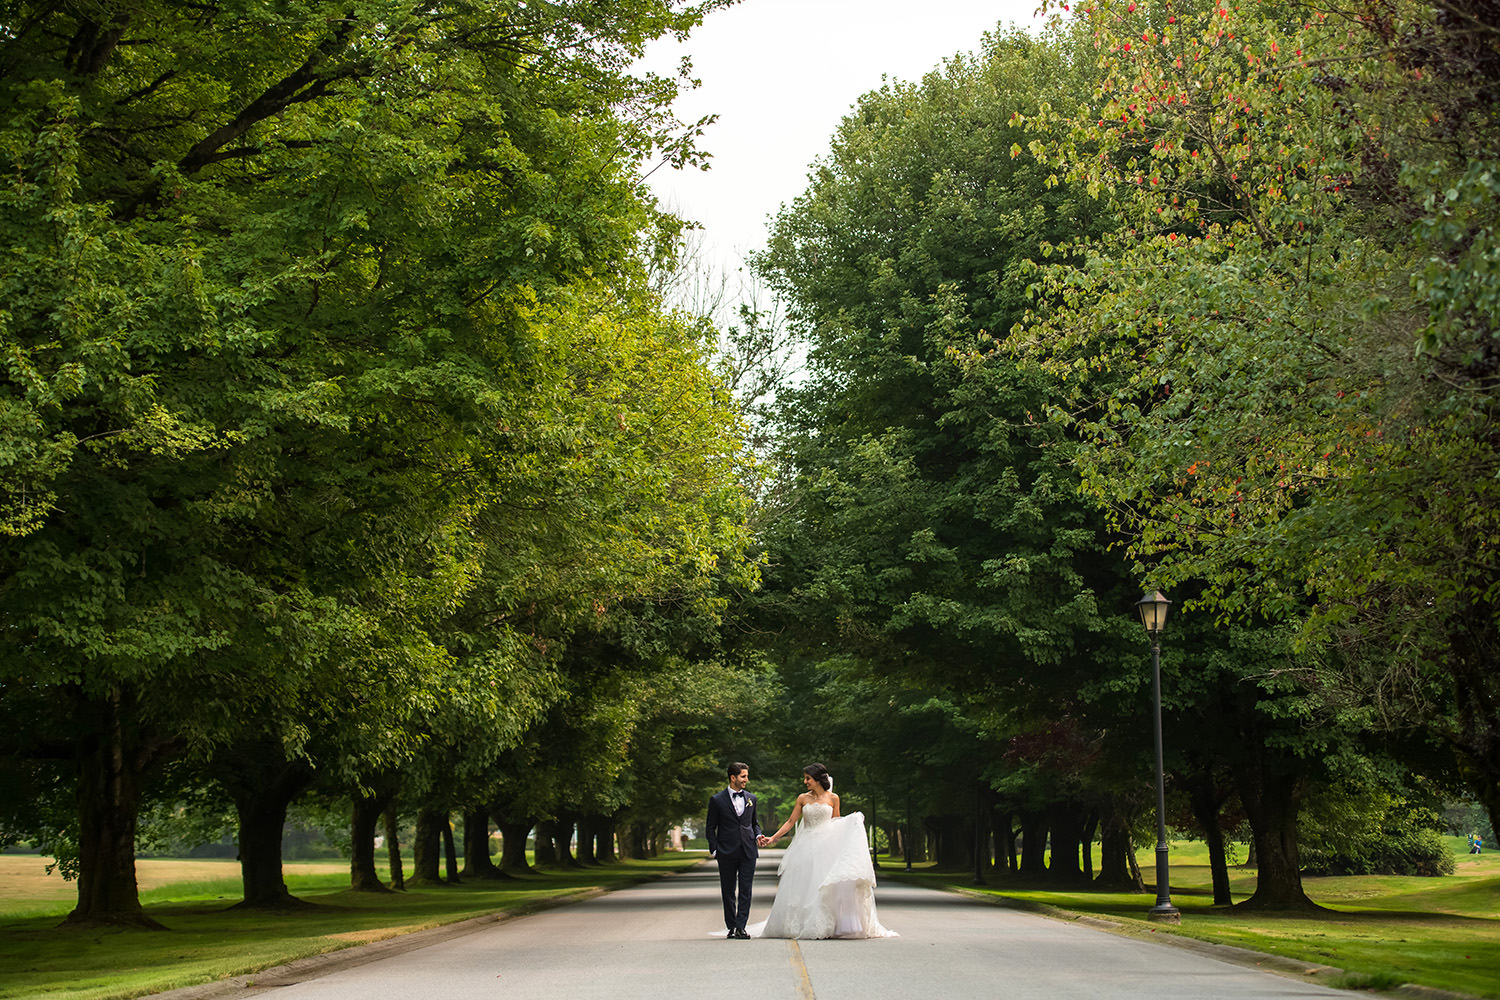 Swaneset Bay entrance with a bride and groom walking down the main drive.